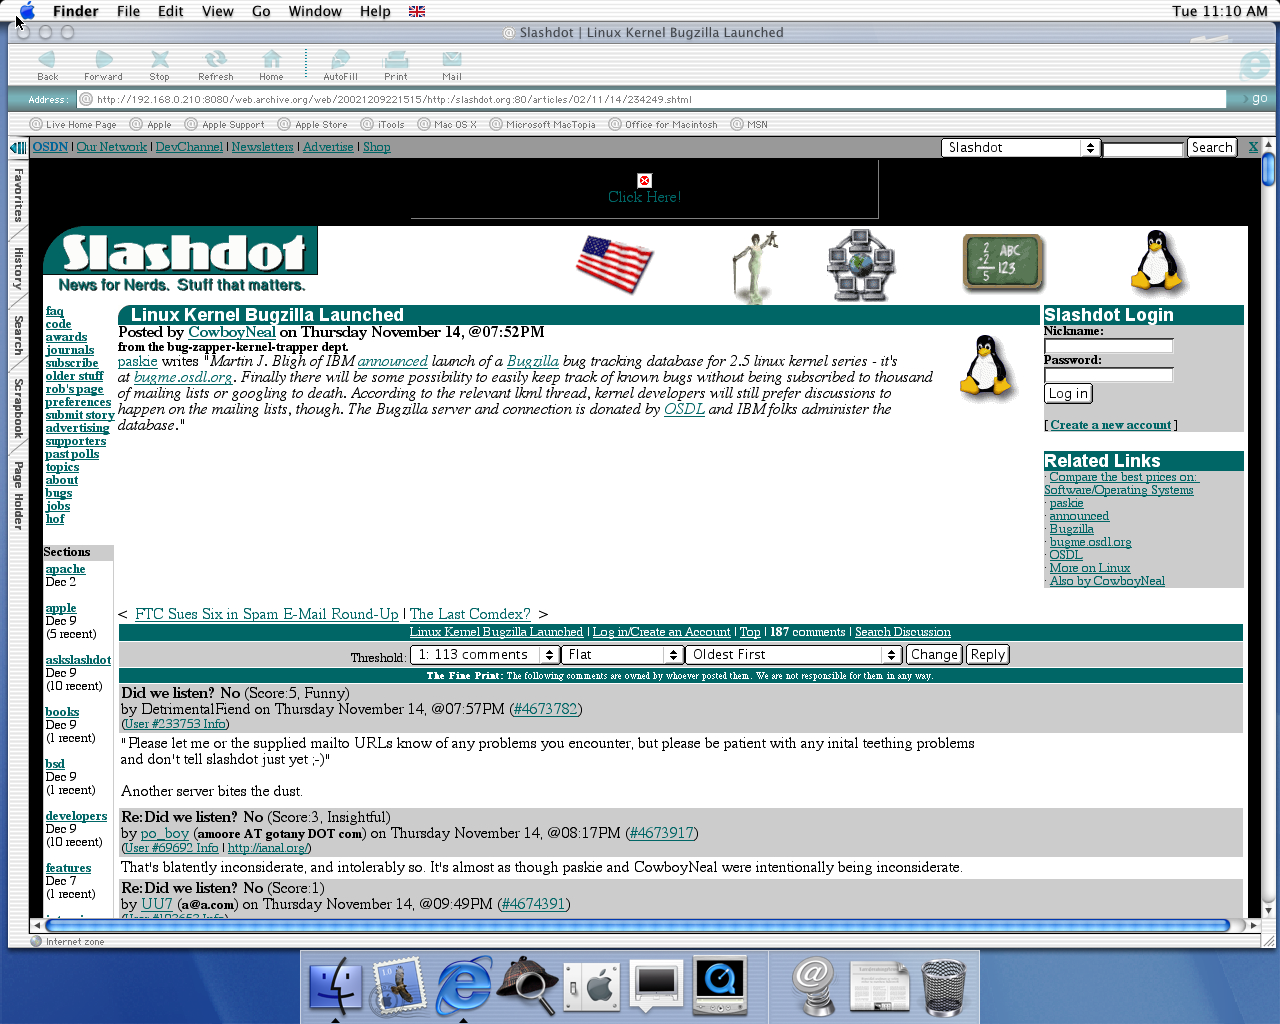 OS X 10.0 PPC with Microsoft Internet Explorer 5.1 for Mac Preview displaying a page from Slashdot archived at December 09, 2002 at 22:15:15